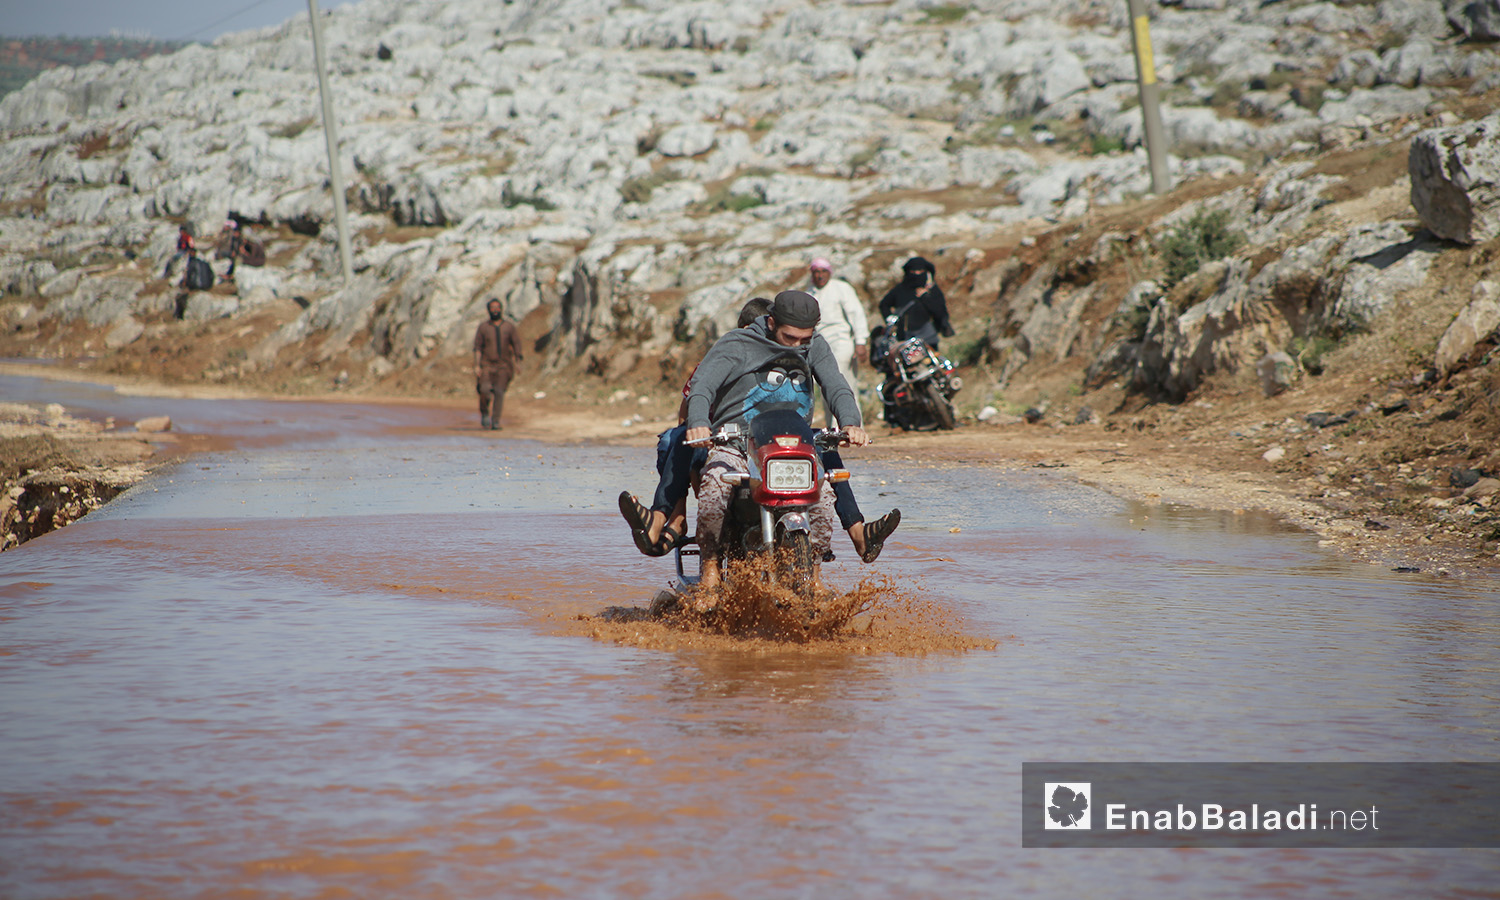 """Two men attempting to cross the stormwater pond by a motorcycle after the rainstorm that hit """"Sahl al-Khair"""" camp for Syrian internally displaced people (IDPs) near Kafr Bunni in northern Idlib countryside – 19 June 2020  (Enab Baladi / Yousef Ghuraibi)"""